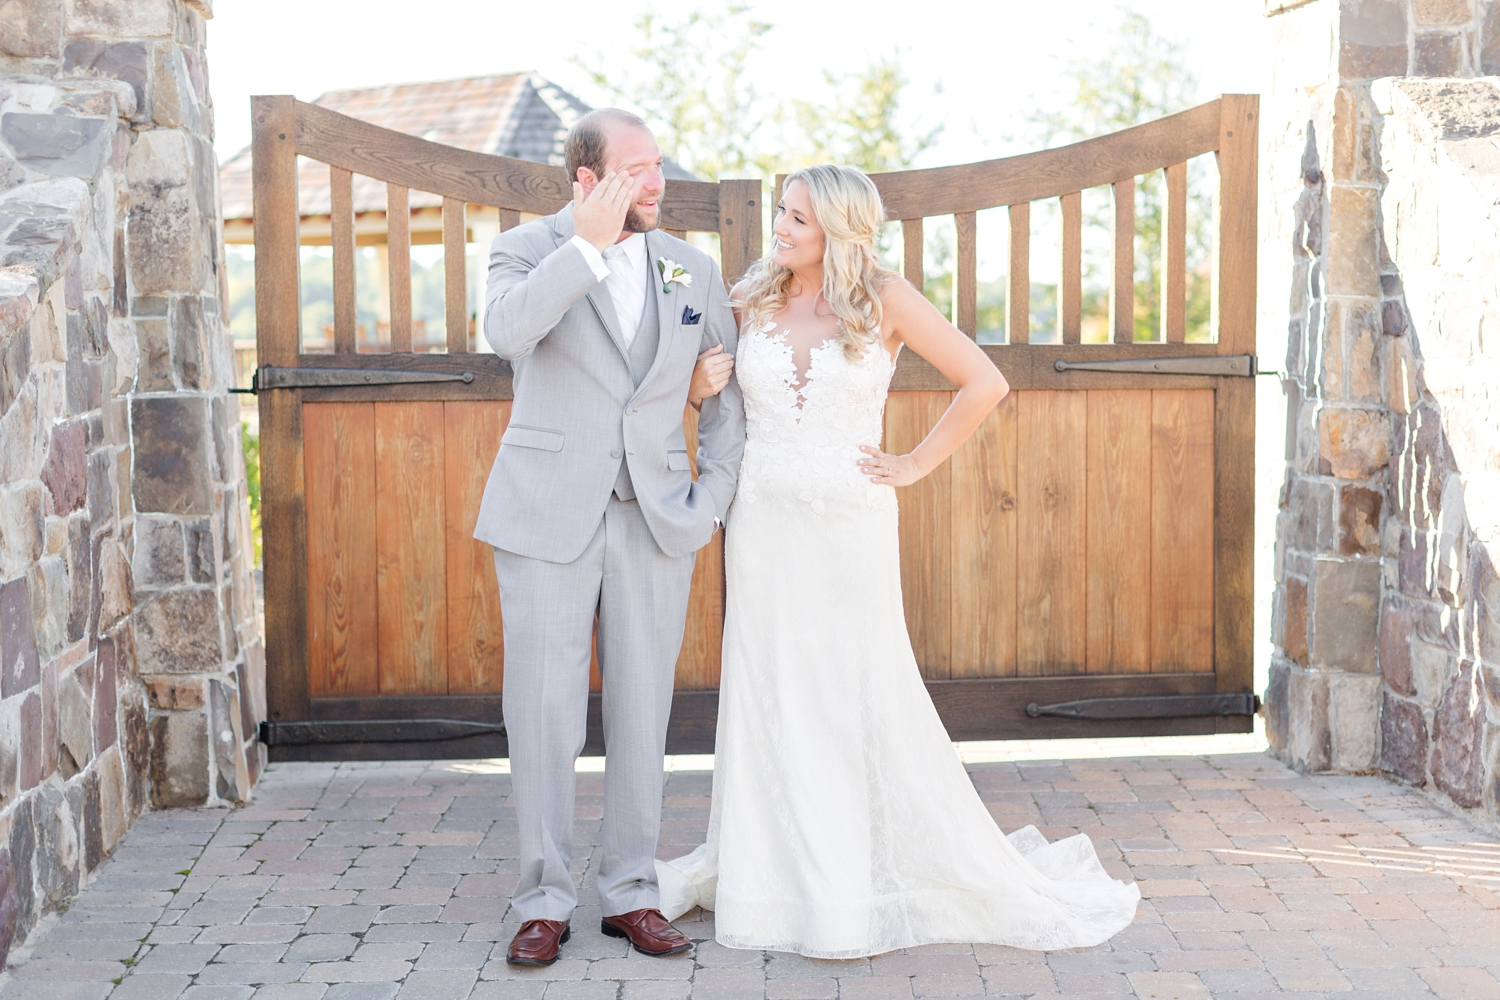 Robbie was so excited to marry his girl, he kept getting emotional thinking about it. Love!